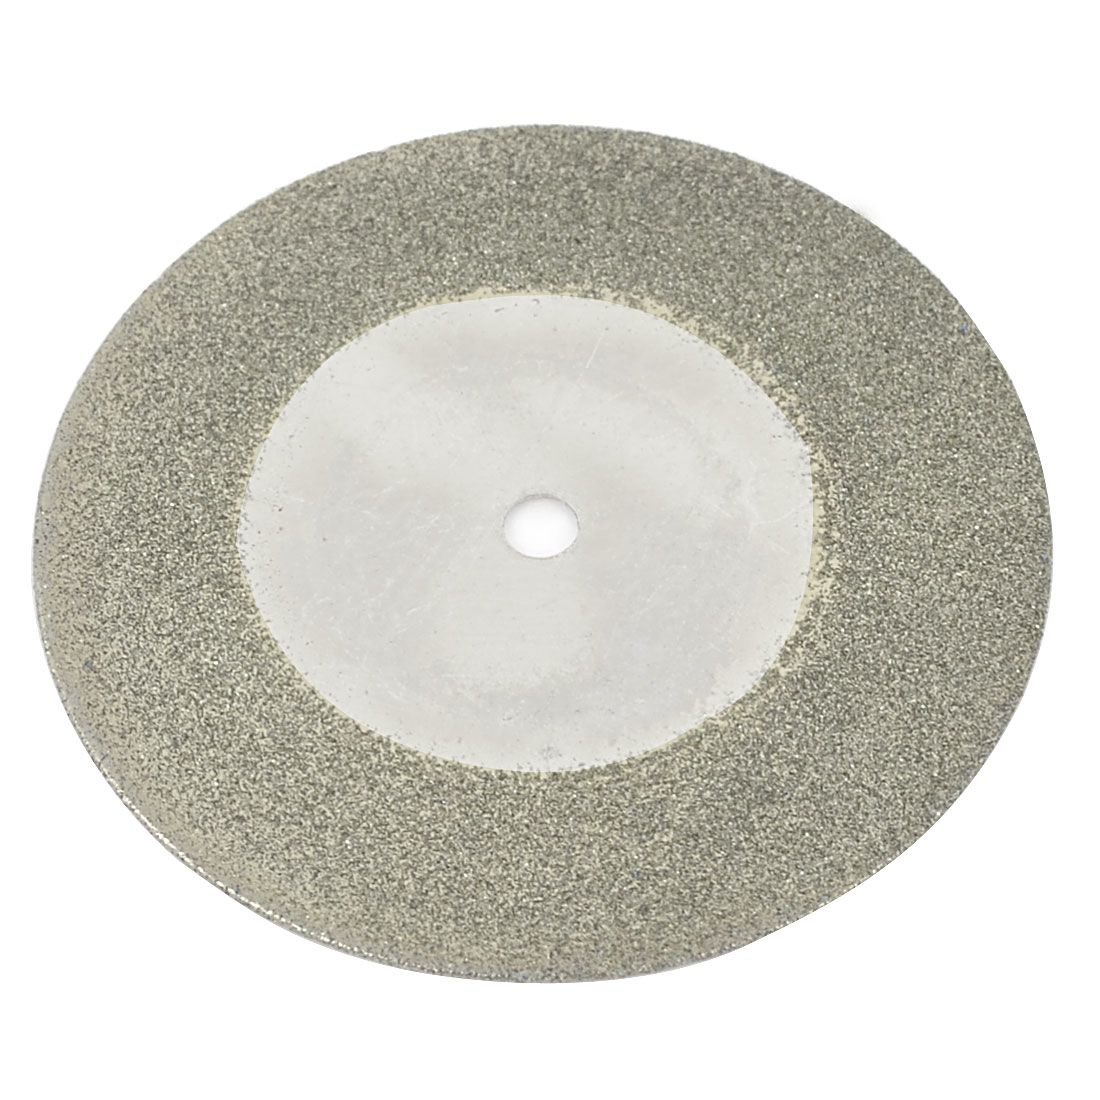 Silver Tone 40mm Dia Diamond Coated Glass Grinding Cutting Cut-off Wheel Disc